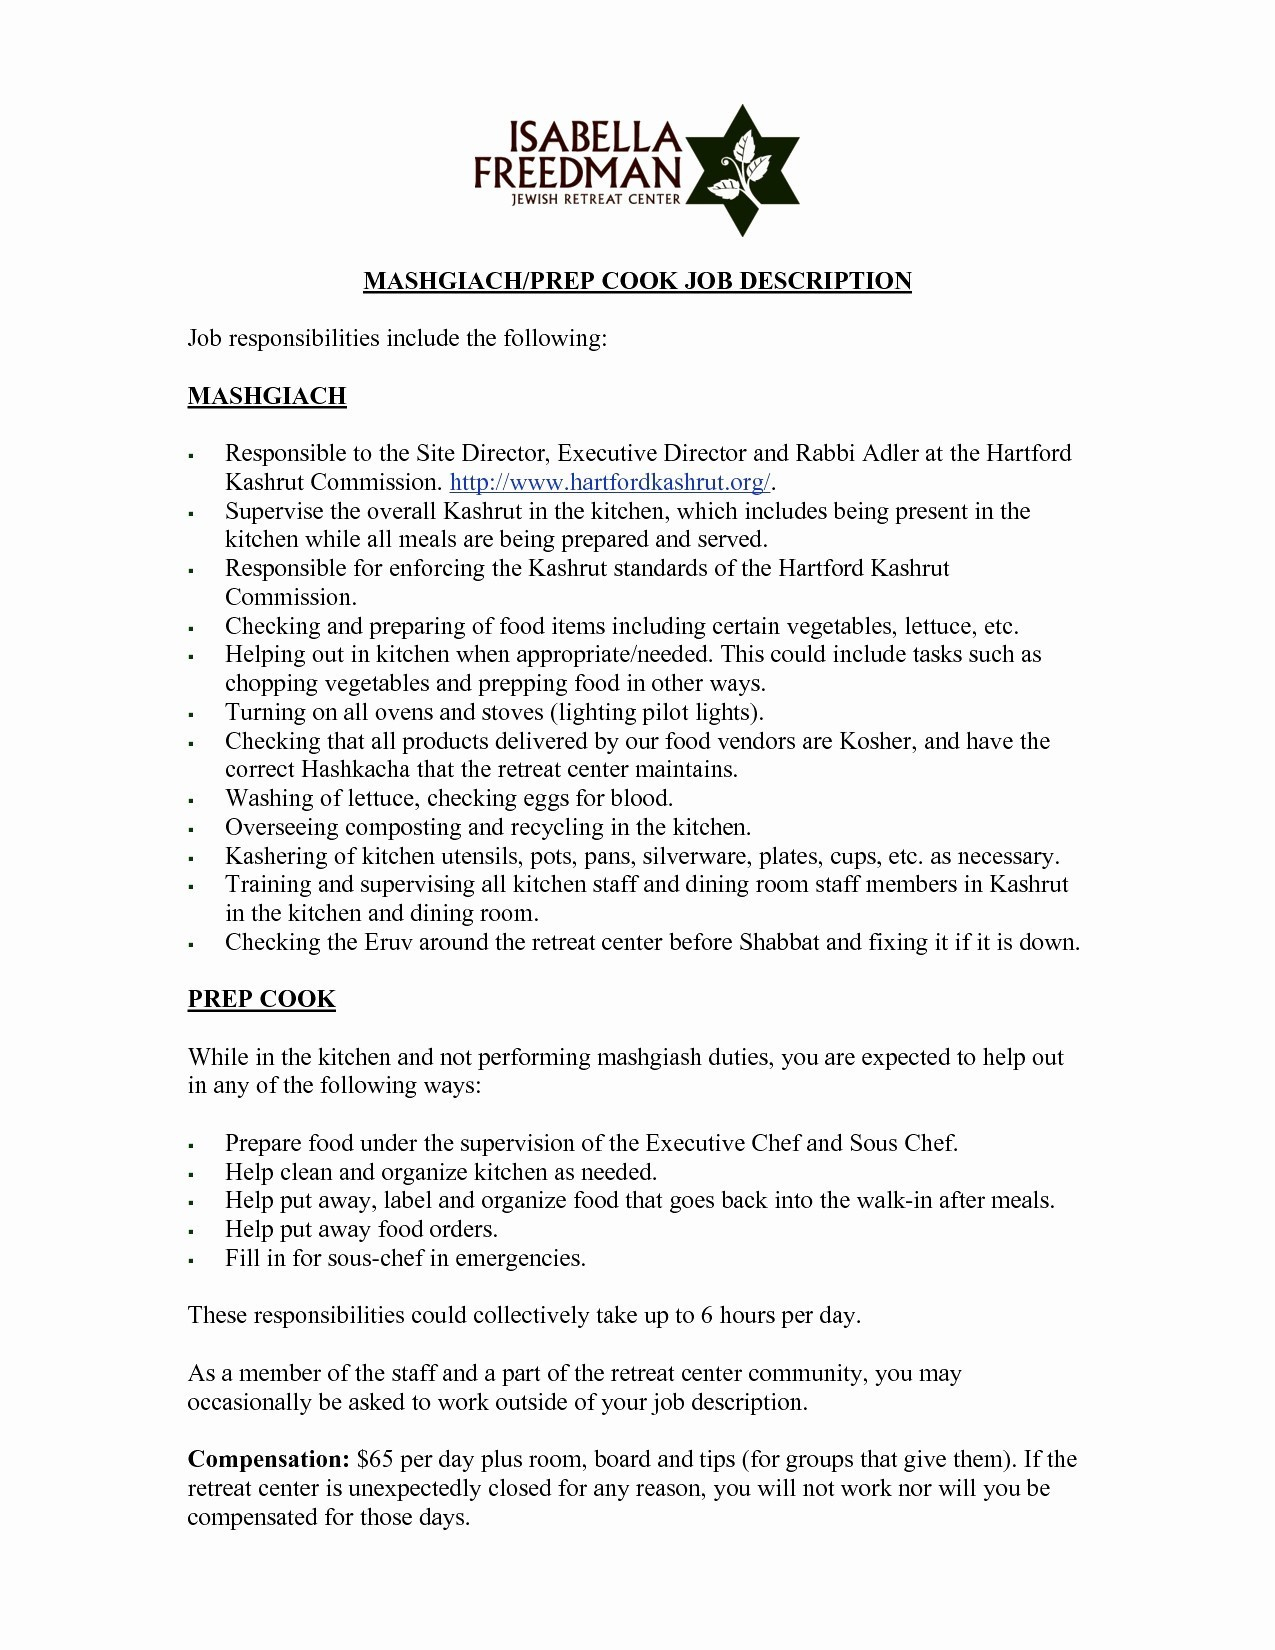 Quick Learner Resume Example - Quick Learner Resume Beautiful Resume Cover Letter format New 20